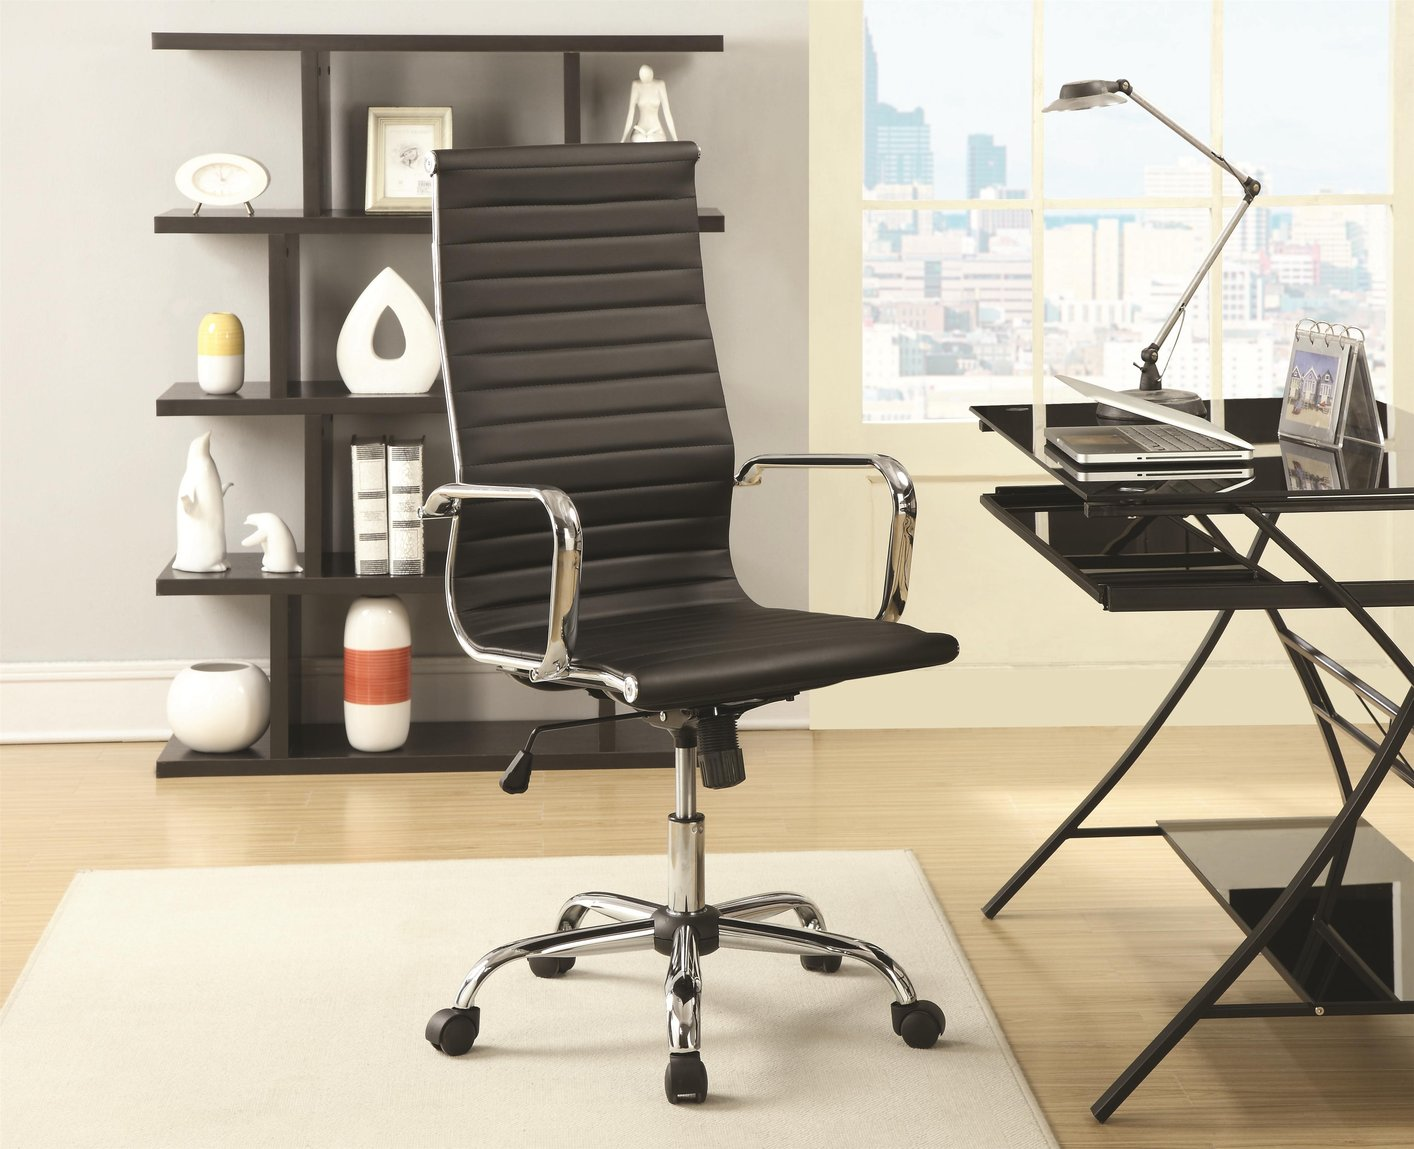 Tony Black Office Chair Las Vegas Furniture Store